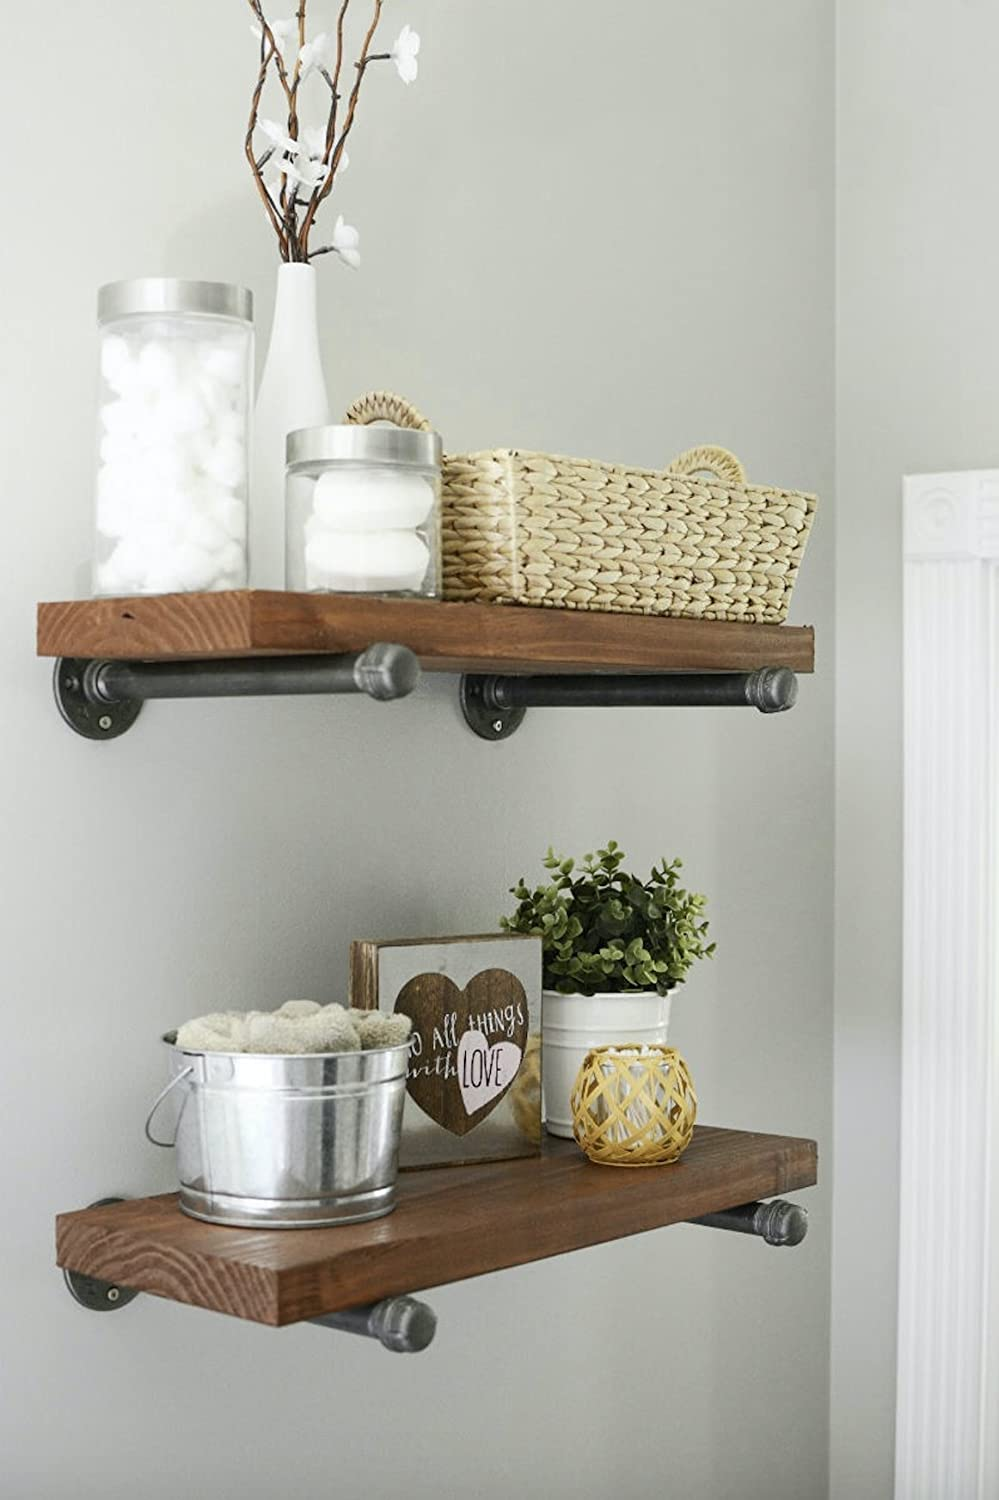 DIY Rustic//Chic and Vintage Decor Floating Shelves Complete Display Set /½ Inch Flange NODNAL Co. 10 Inch 4 Pack 10 Iron Pipe Shelf Mounting Brackets Industrial Black Steel Iron Straight Shelves